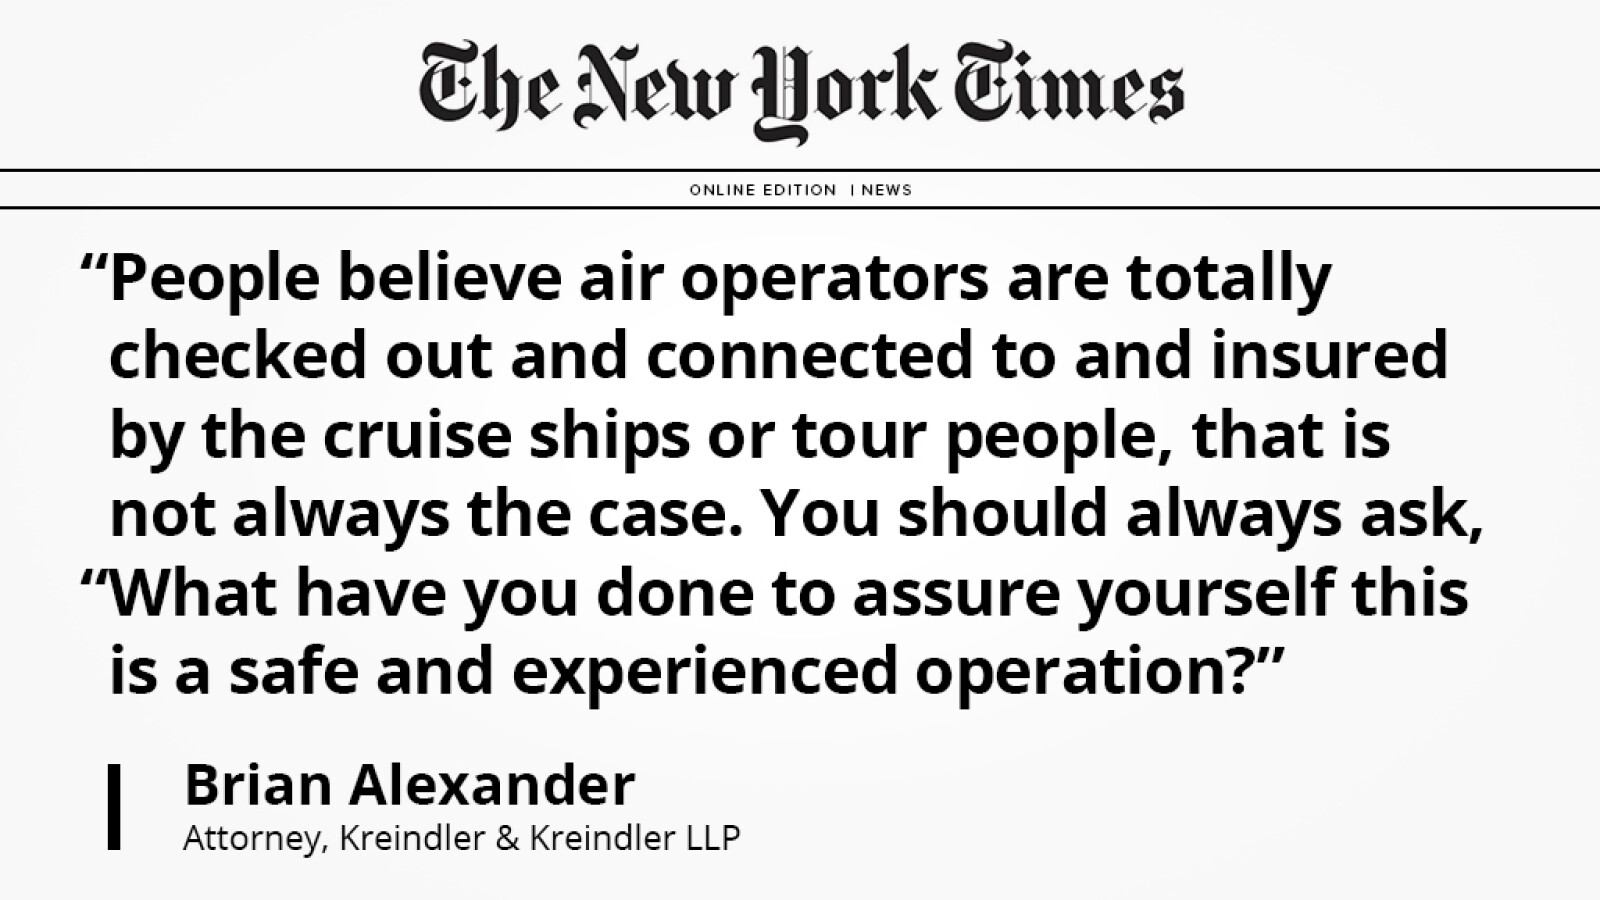 Aviation attorney Brian Alexander speaks with The New York Times regarding safe travel